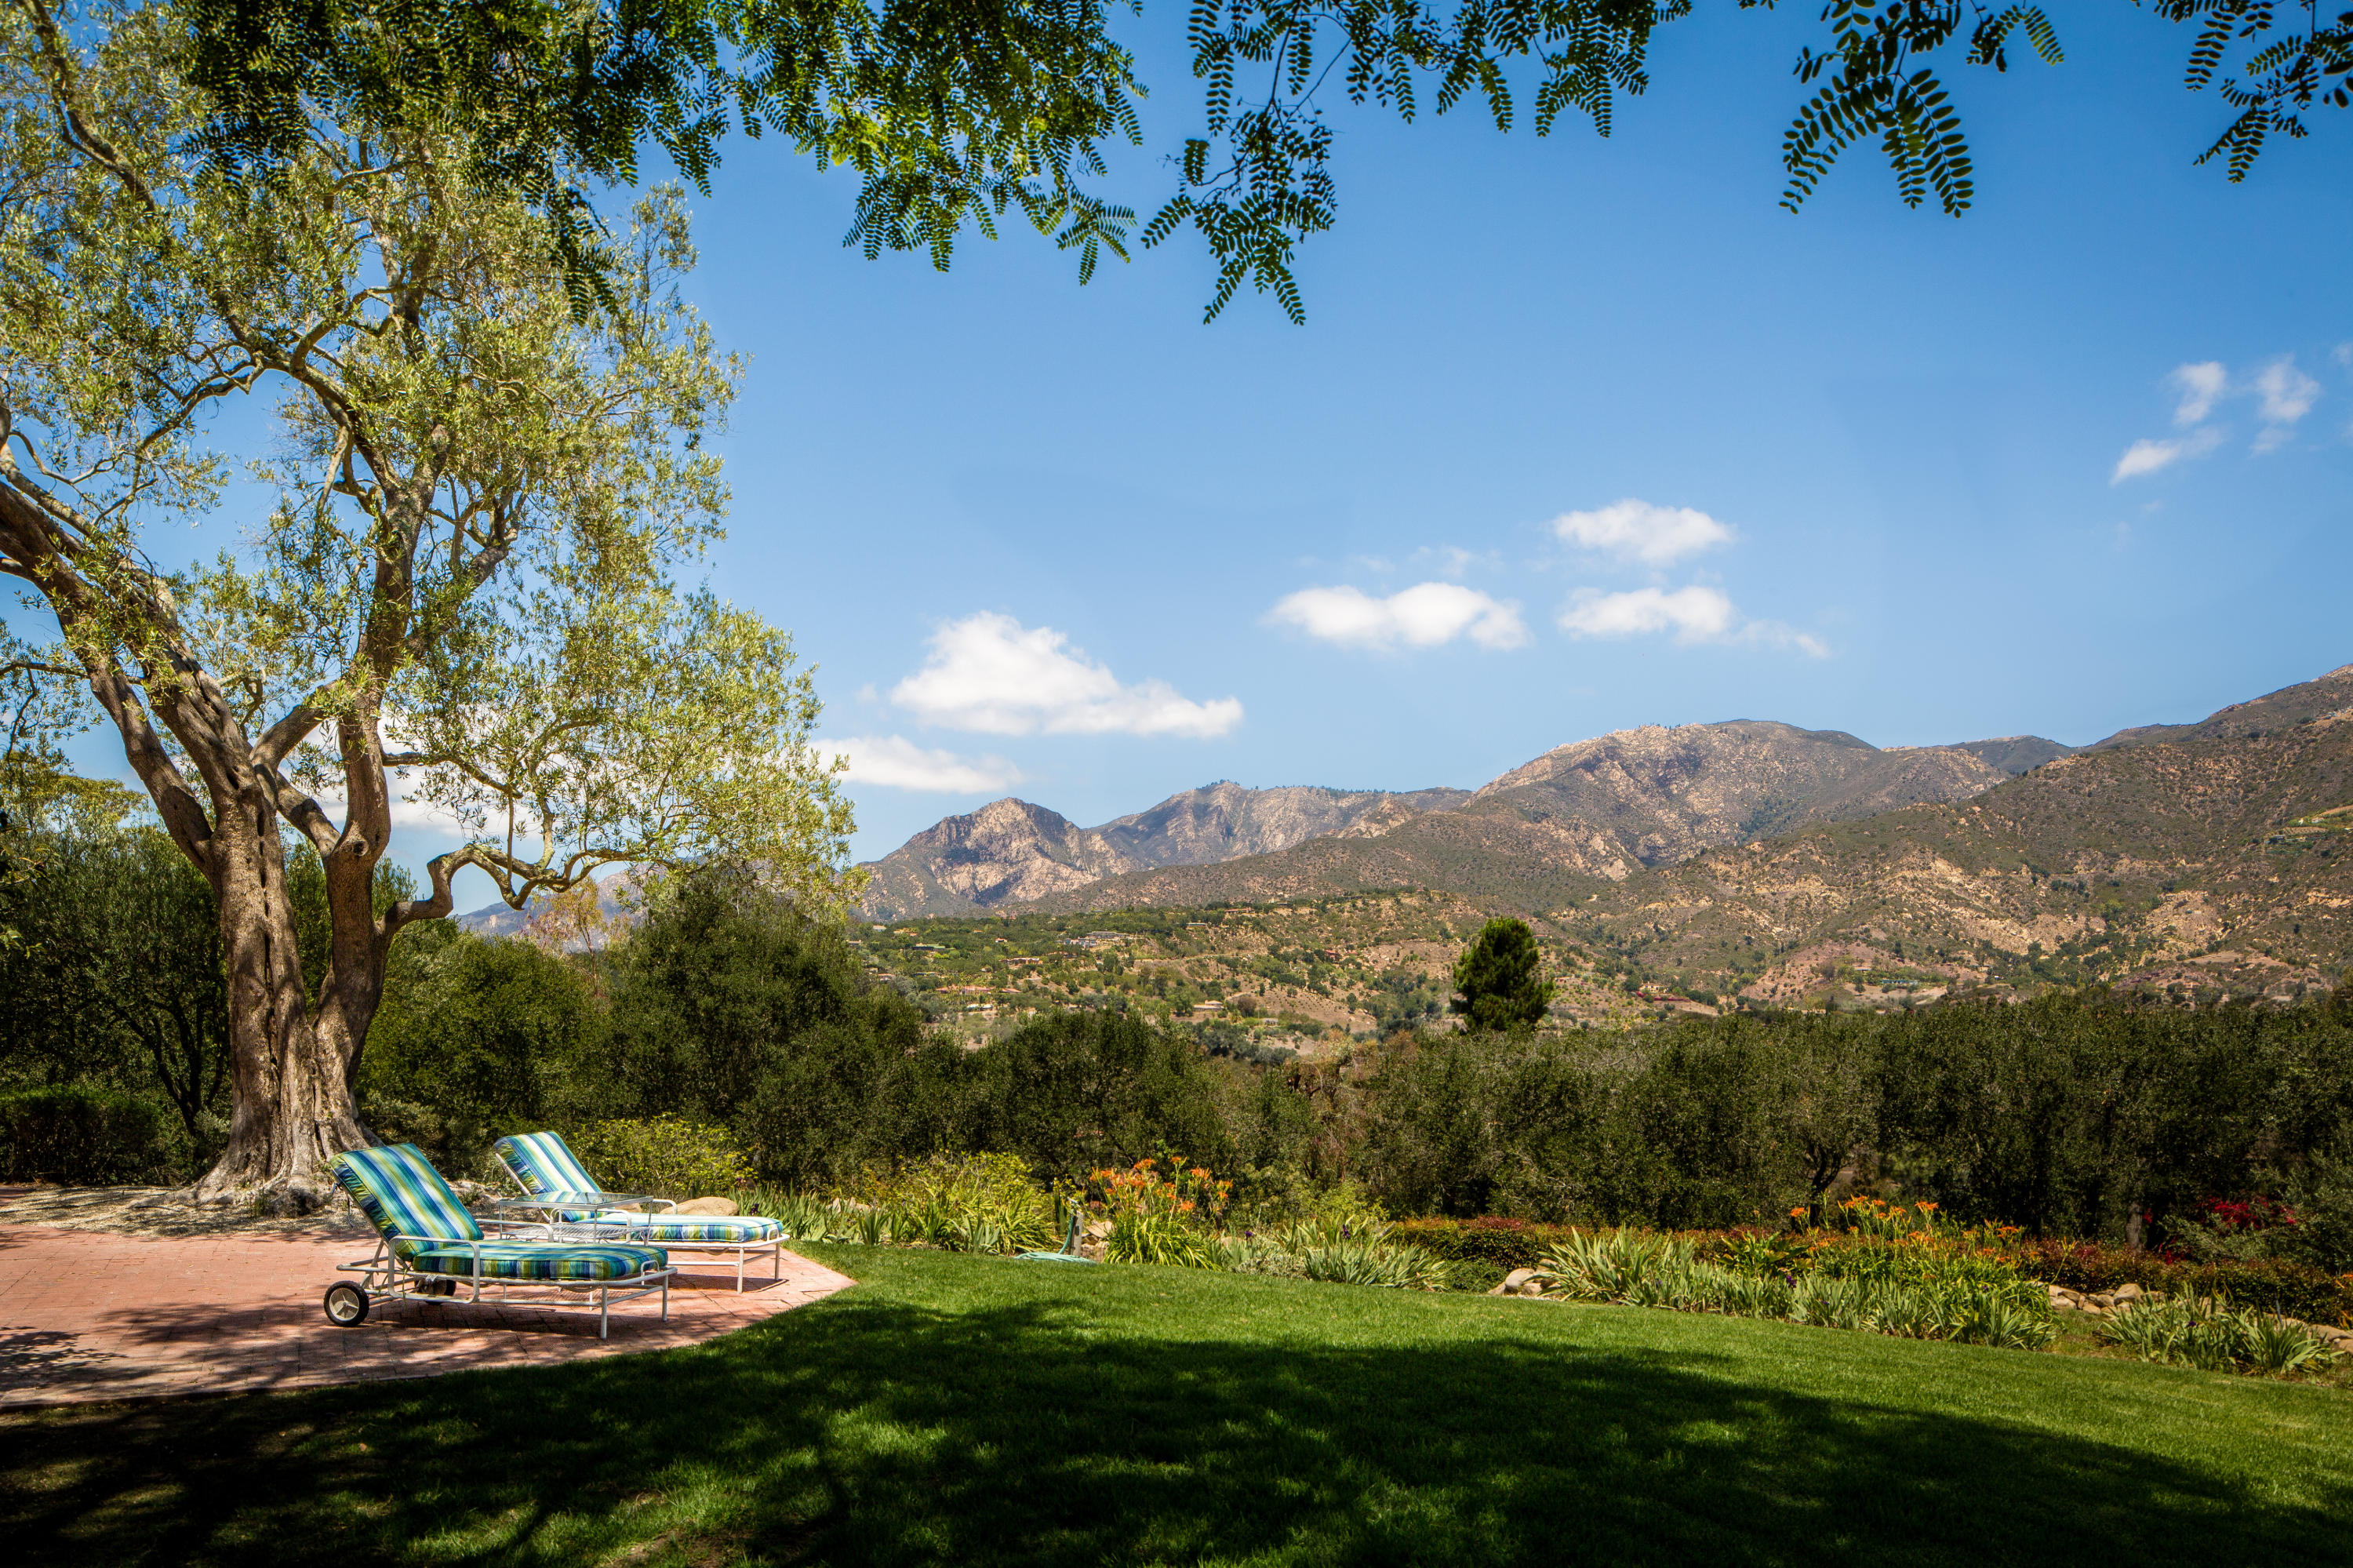 Property photo for 80 Conejo Rd Santa Barbara, California 93103 - 15-2418